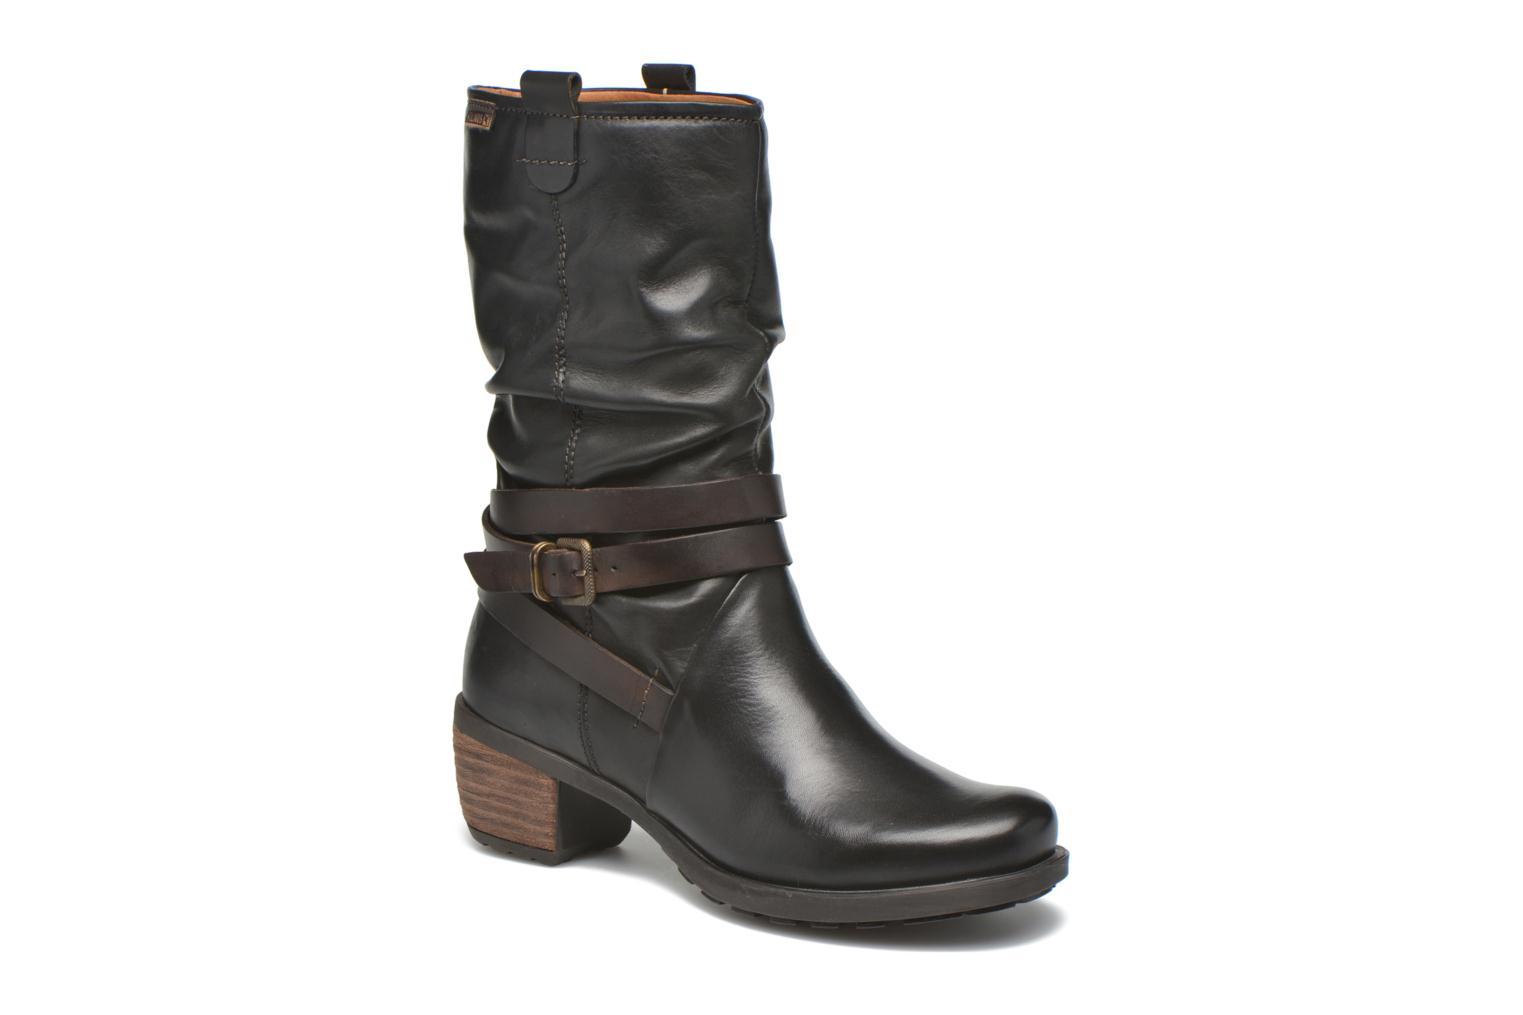 Marques Chaussure femme Pikolinos femme LE MANS 838-9794 Olmo